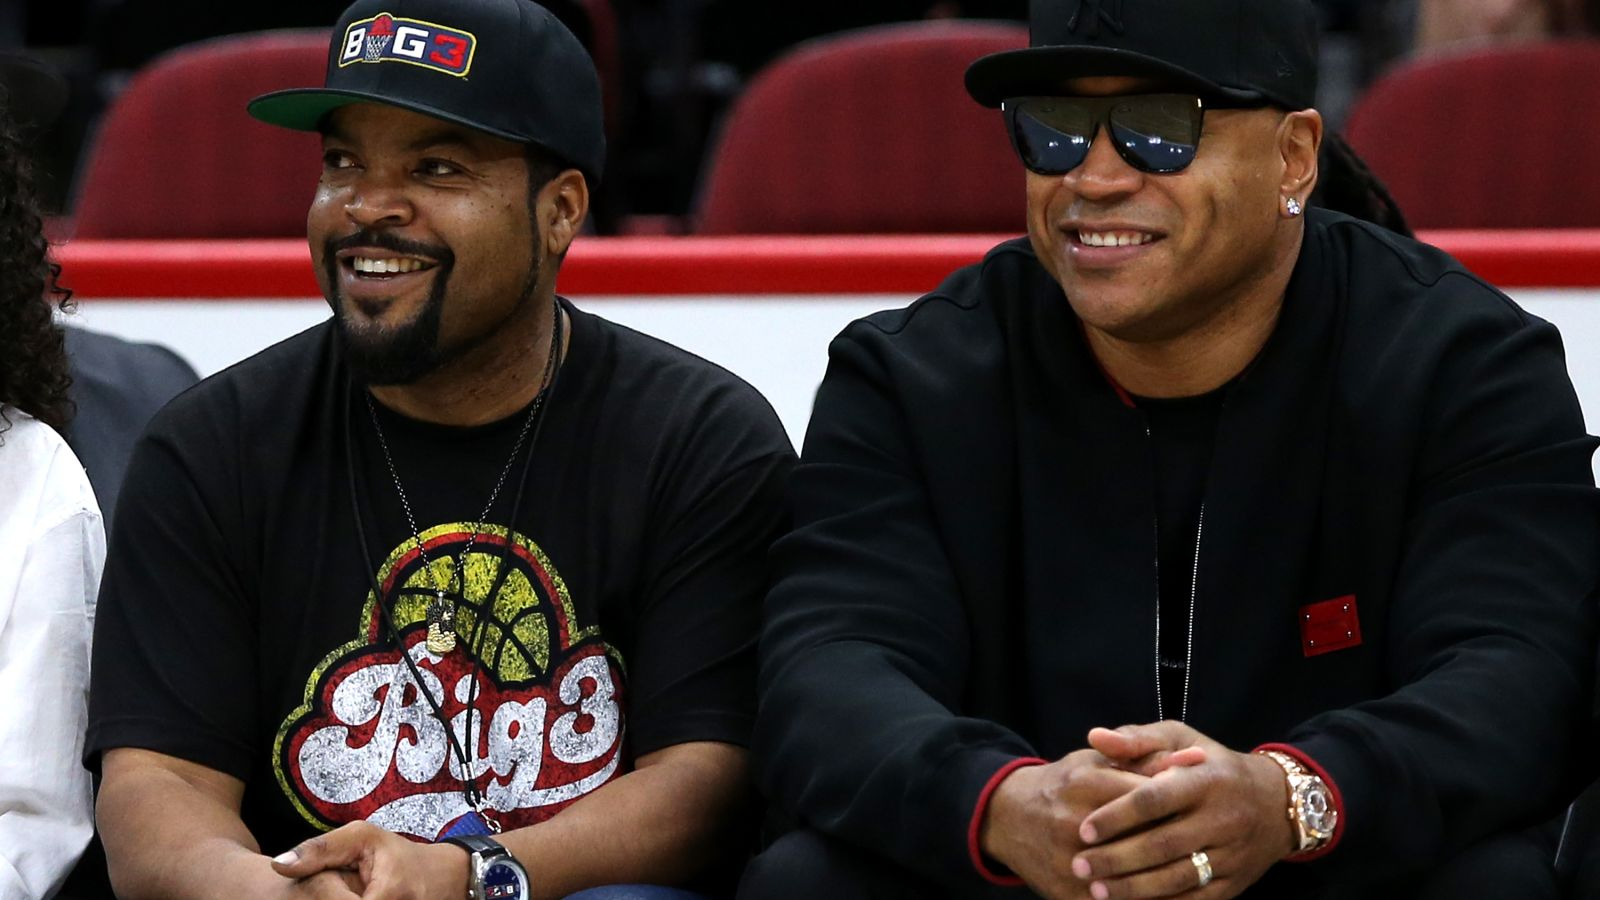 Ice Cube & LL Cool J. Secured Billion Dollar Investments For Buying Sports TV Stations Are Their Fans Are In Awe